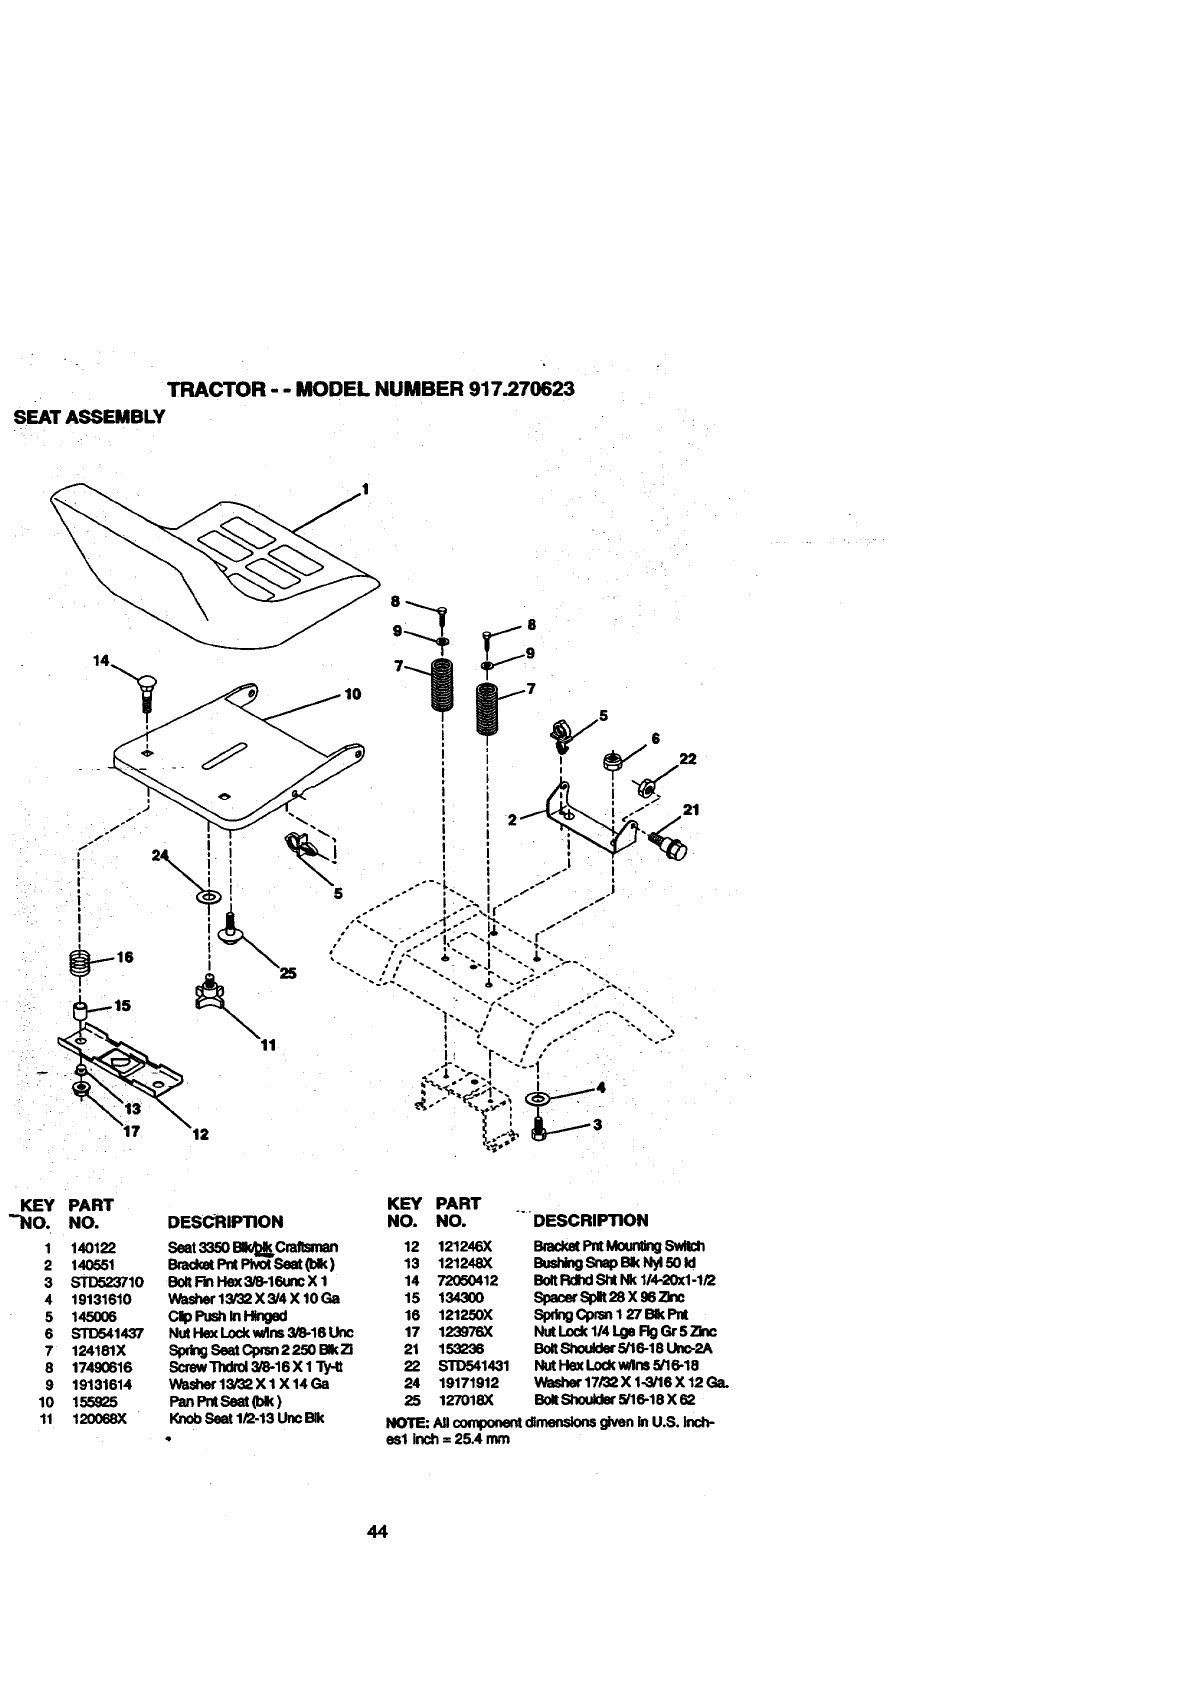 Craftsman 917270623 User Manual ELECTRIC START 42